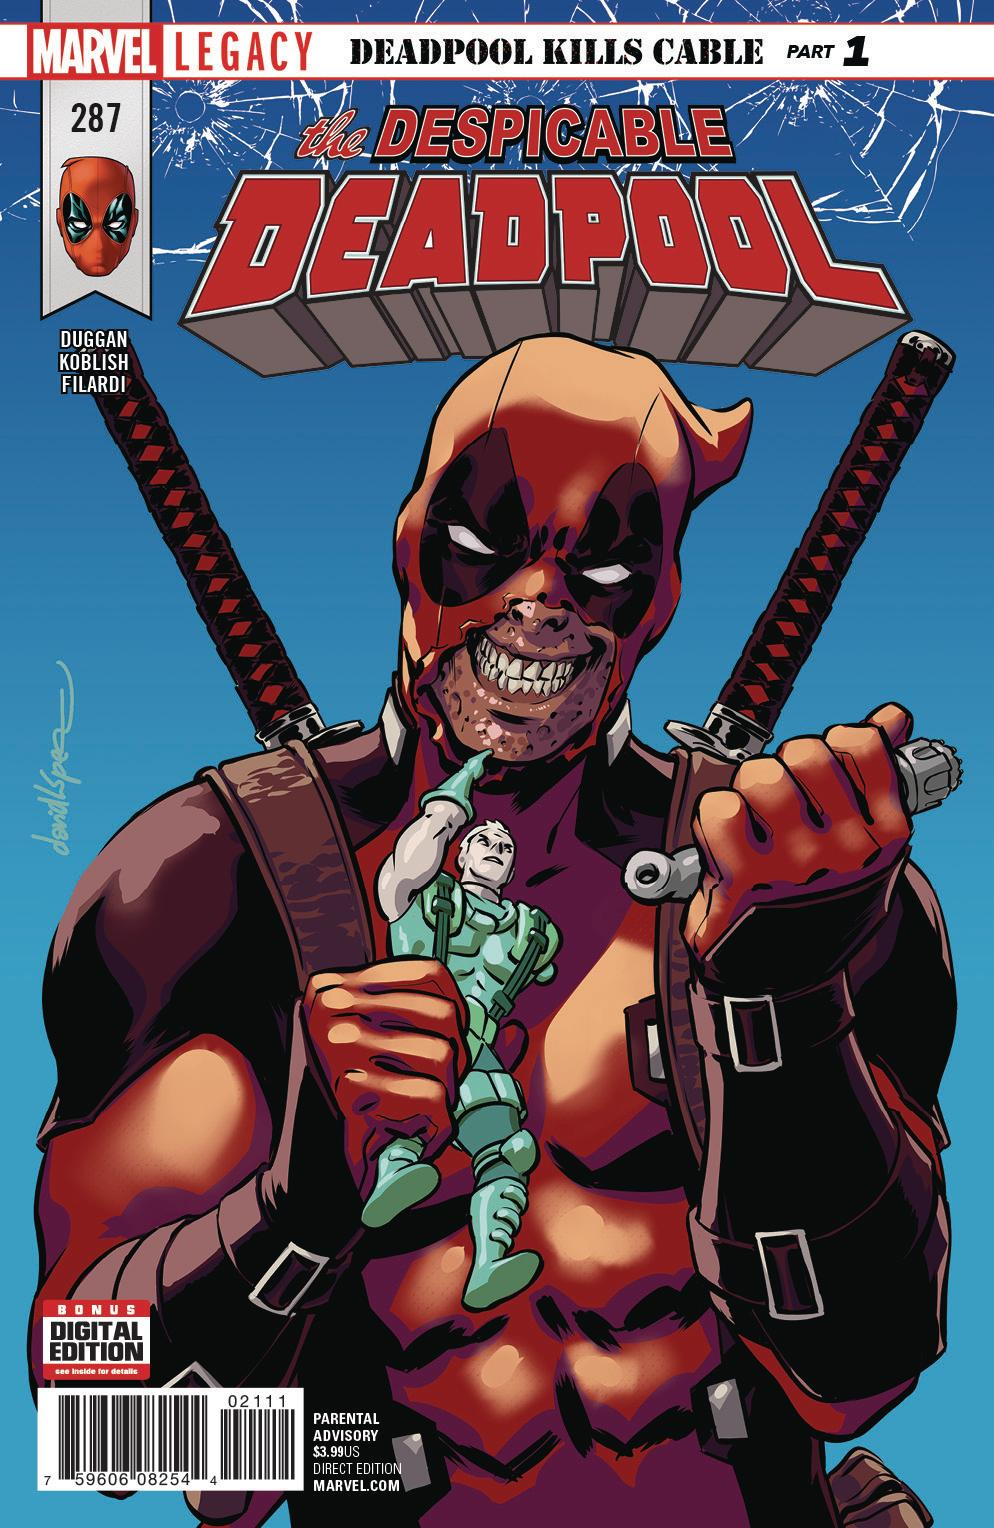 Despicable Deadpool Vol. 1 #287